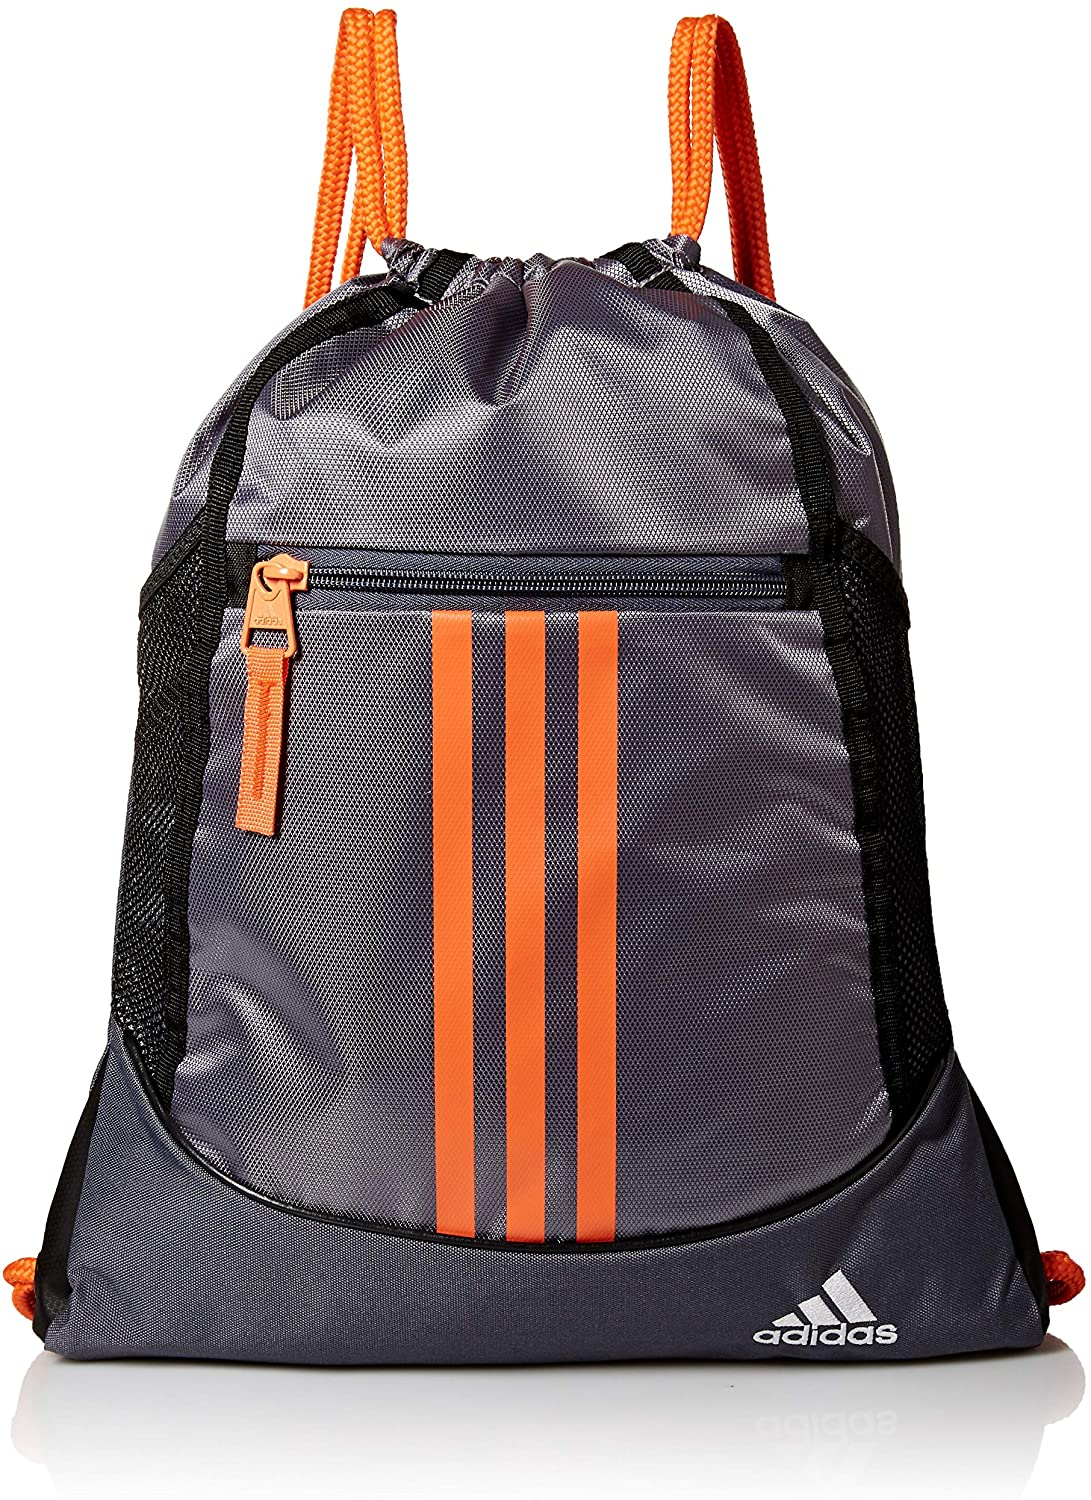 adidas Alliance II Sackpack - United Festival Outfitters